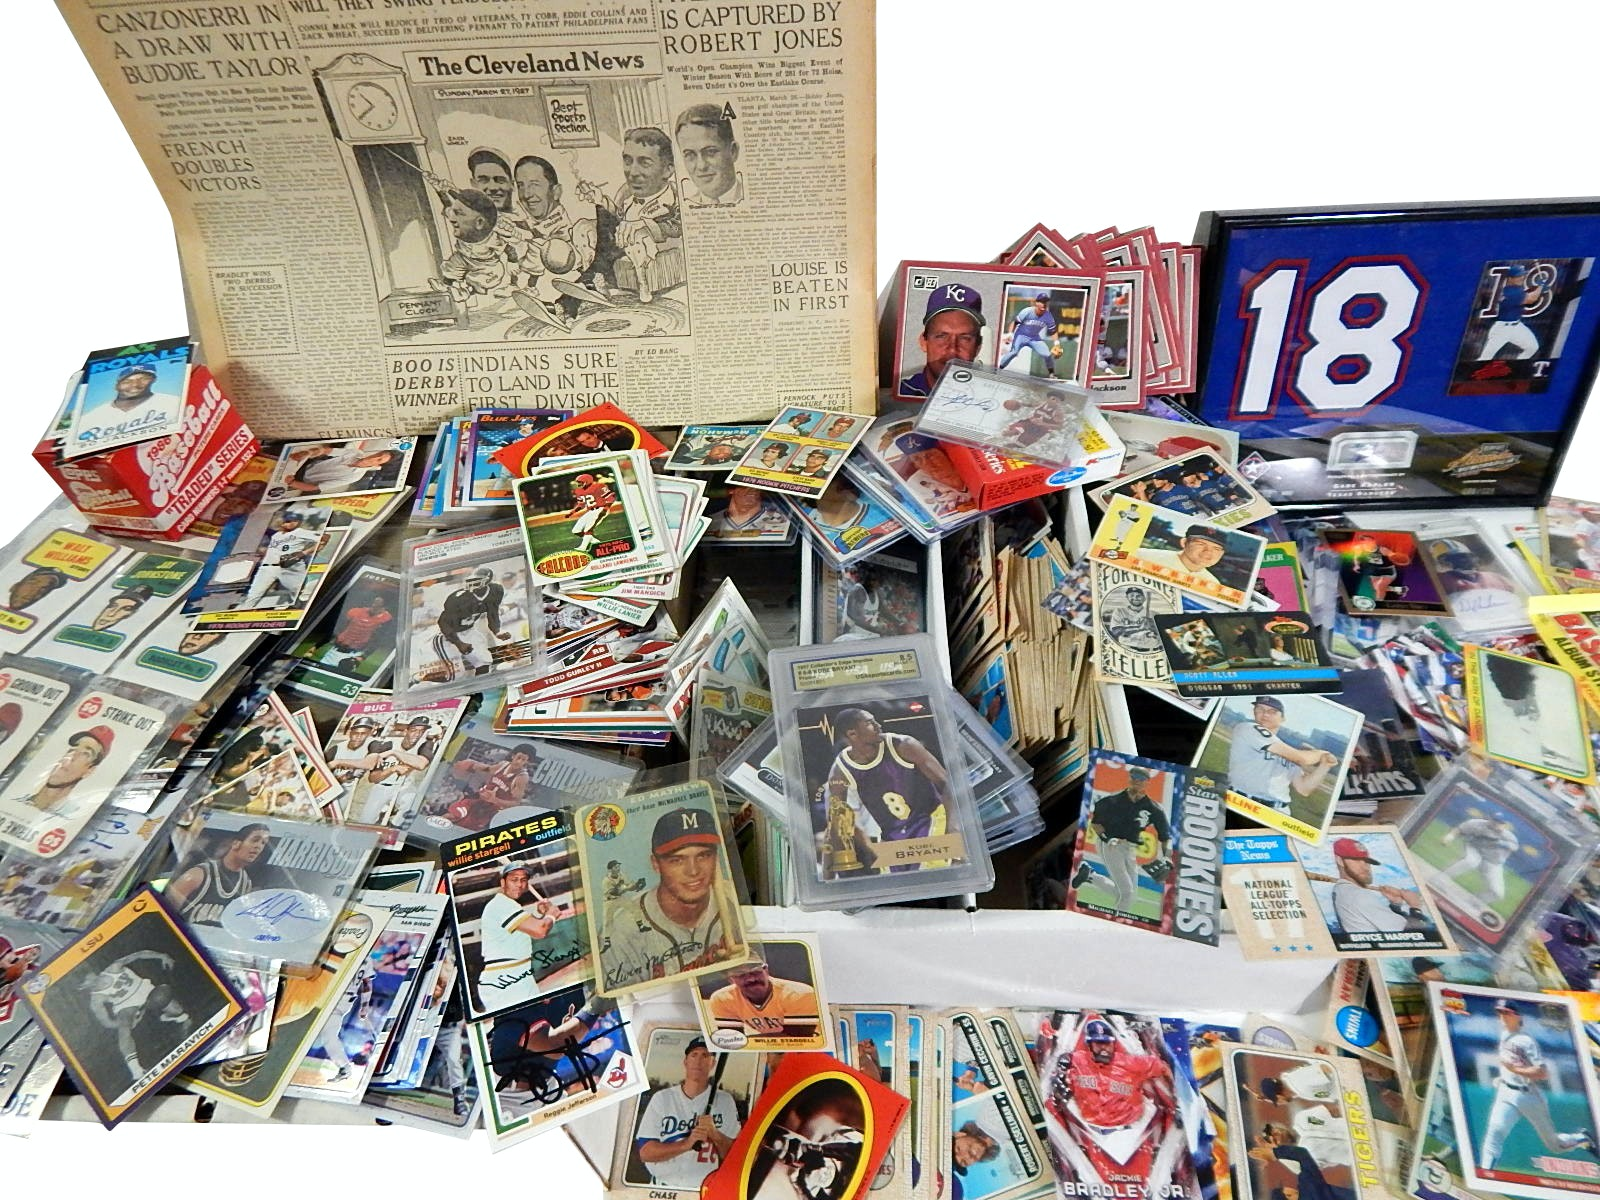 Sports Card Collection with 1954 Topps Eddie Mathews Card - Around 6000 Count